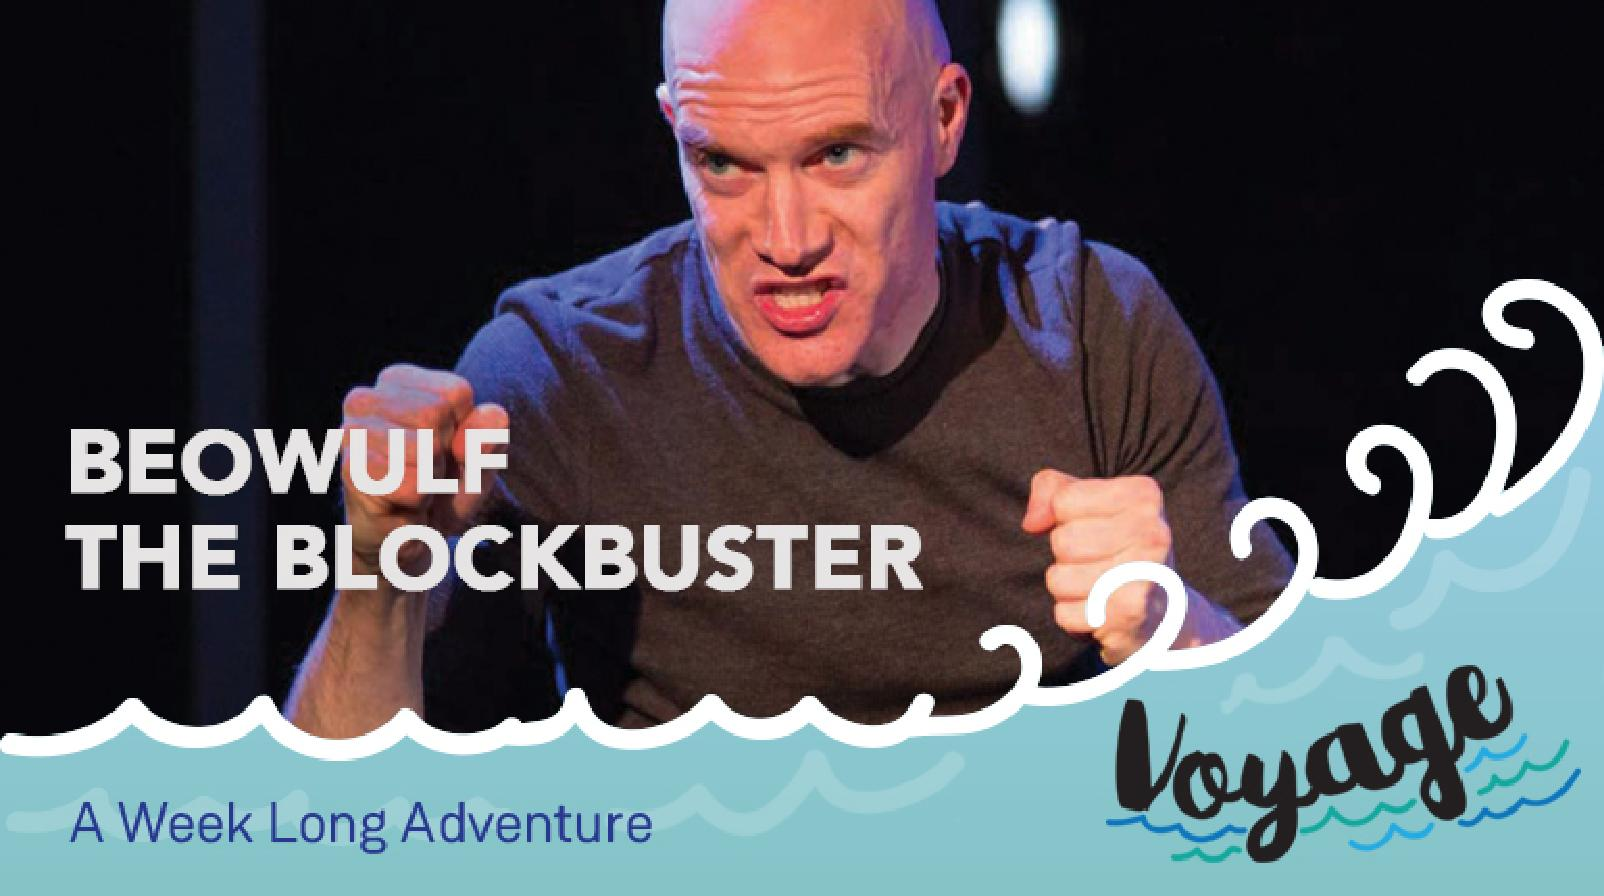 Beowulf The Blockbuster